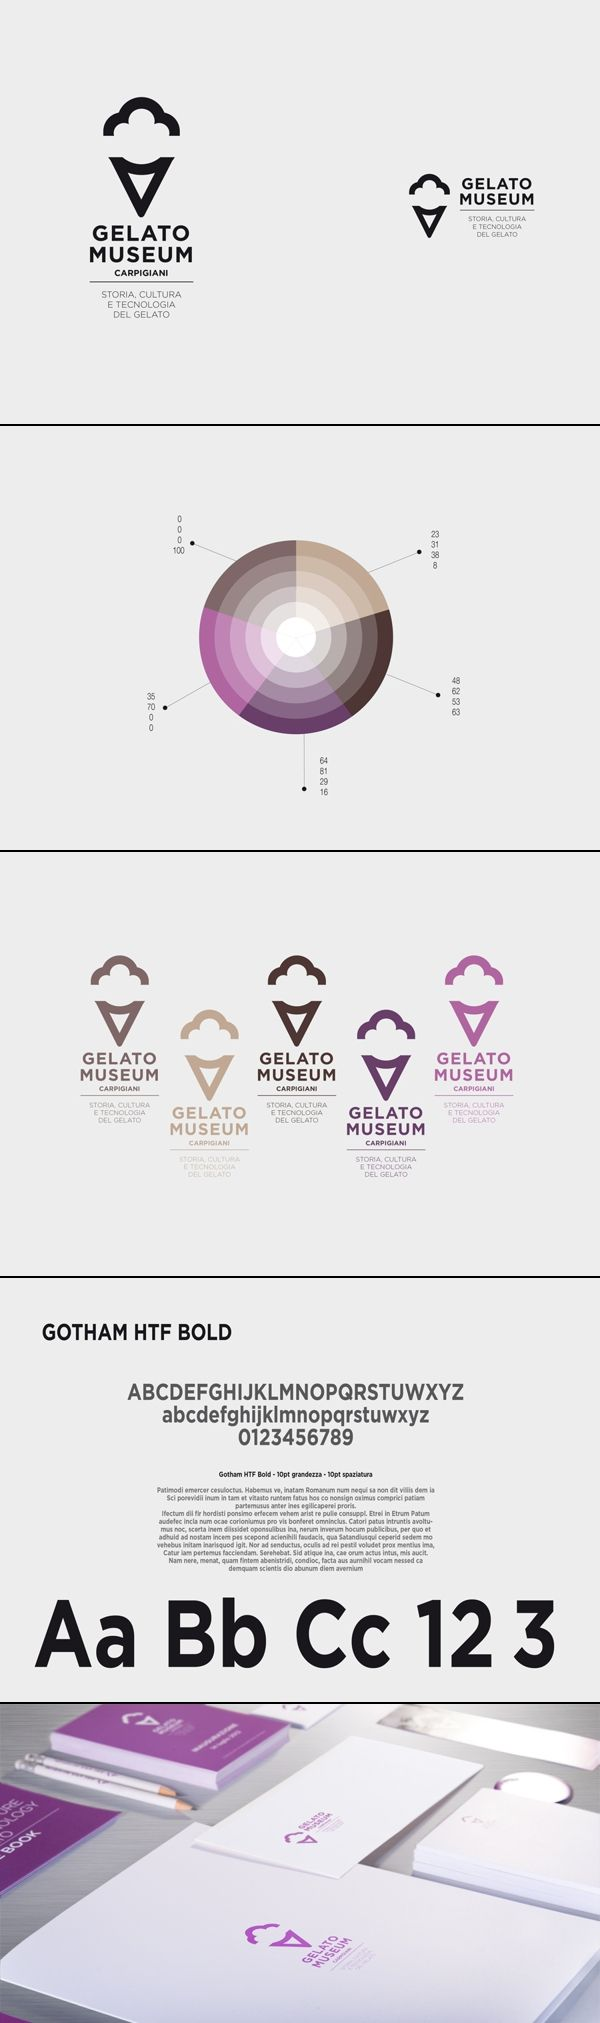 Gelato Museum Carpigiani Brand Identity & Creative Direction via Behance.